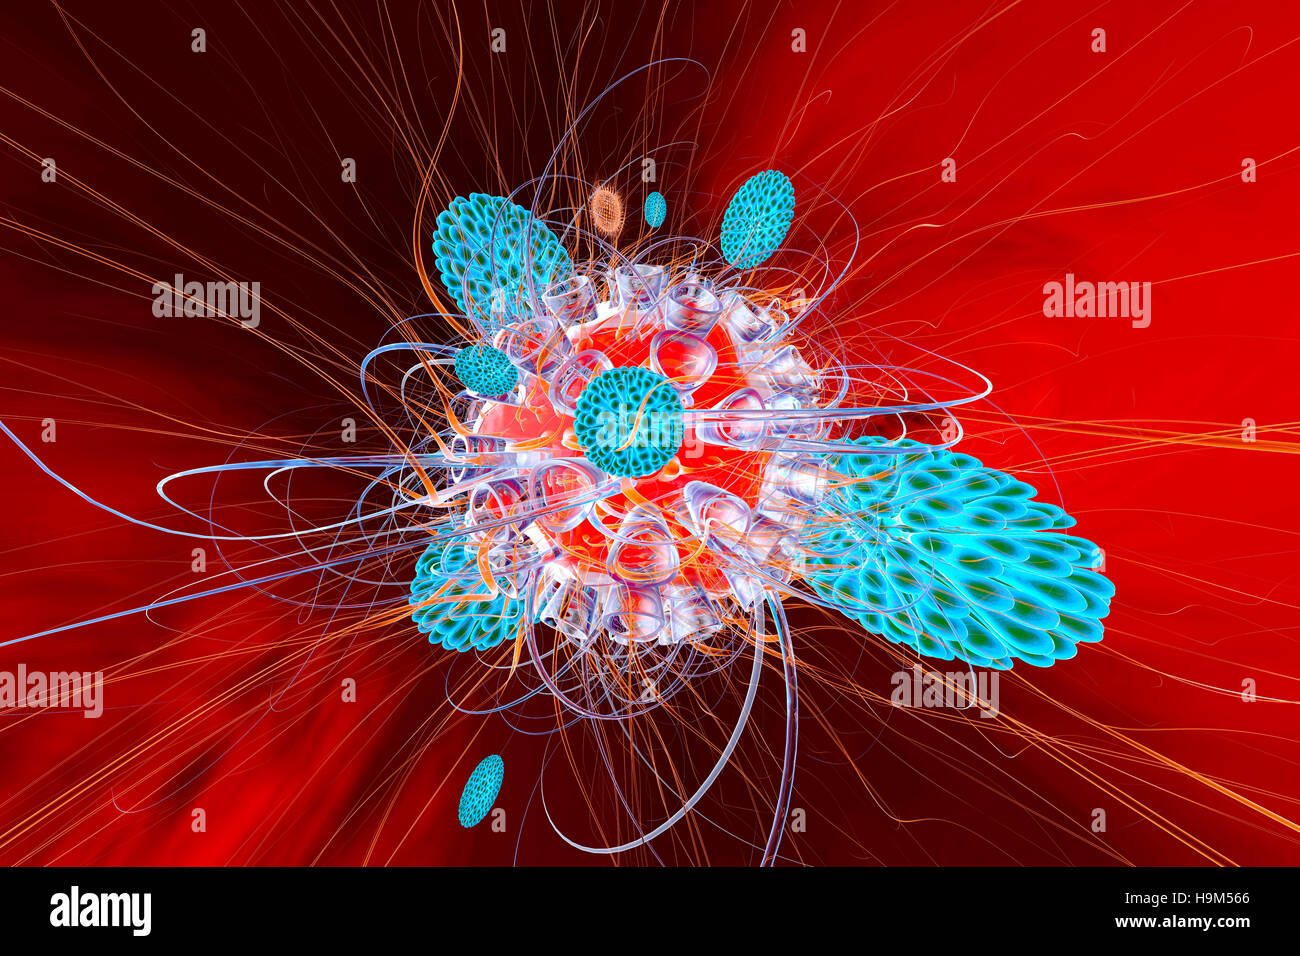 Immune system defense cells attacking a virus, 3D Rendering - Stock Image